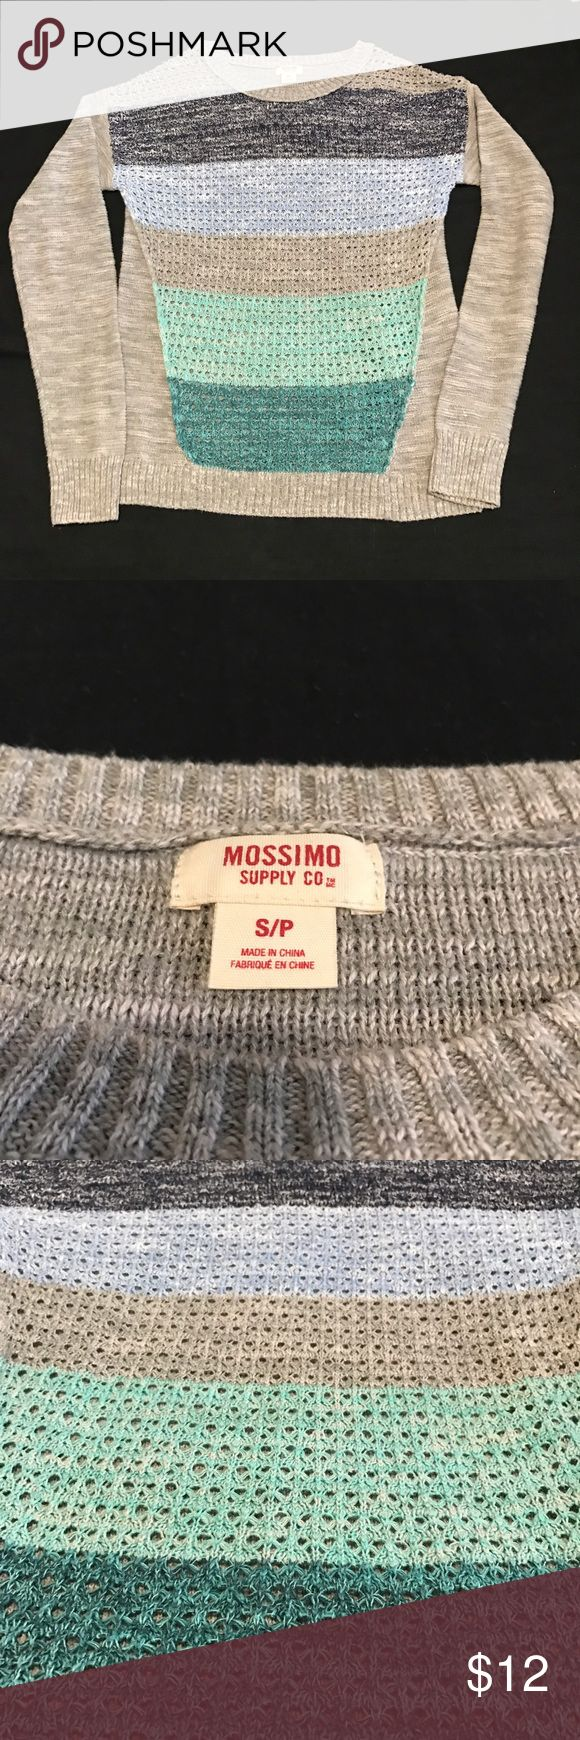 Mossimo Supply Company Knitted Colorblock Sweater Knitted sweater with different tones of blue down the front. Mossimo Supply Co. Sweaters Crew & Scoop Necks